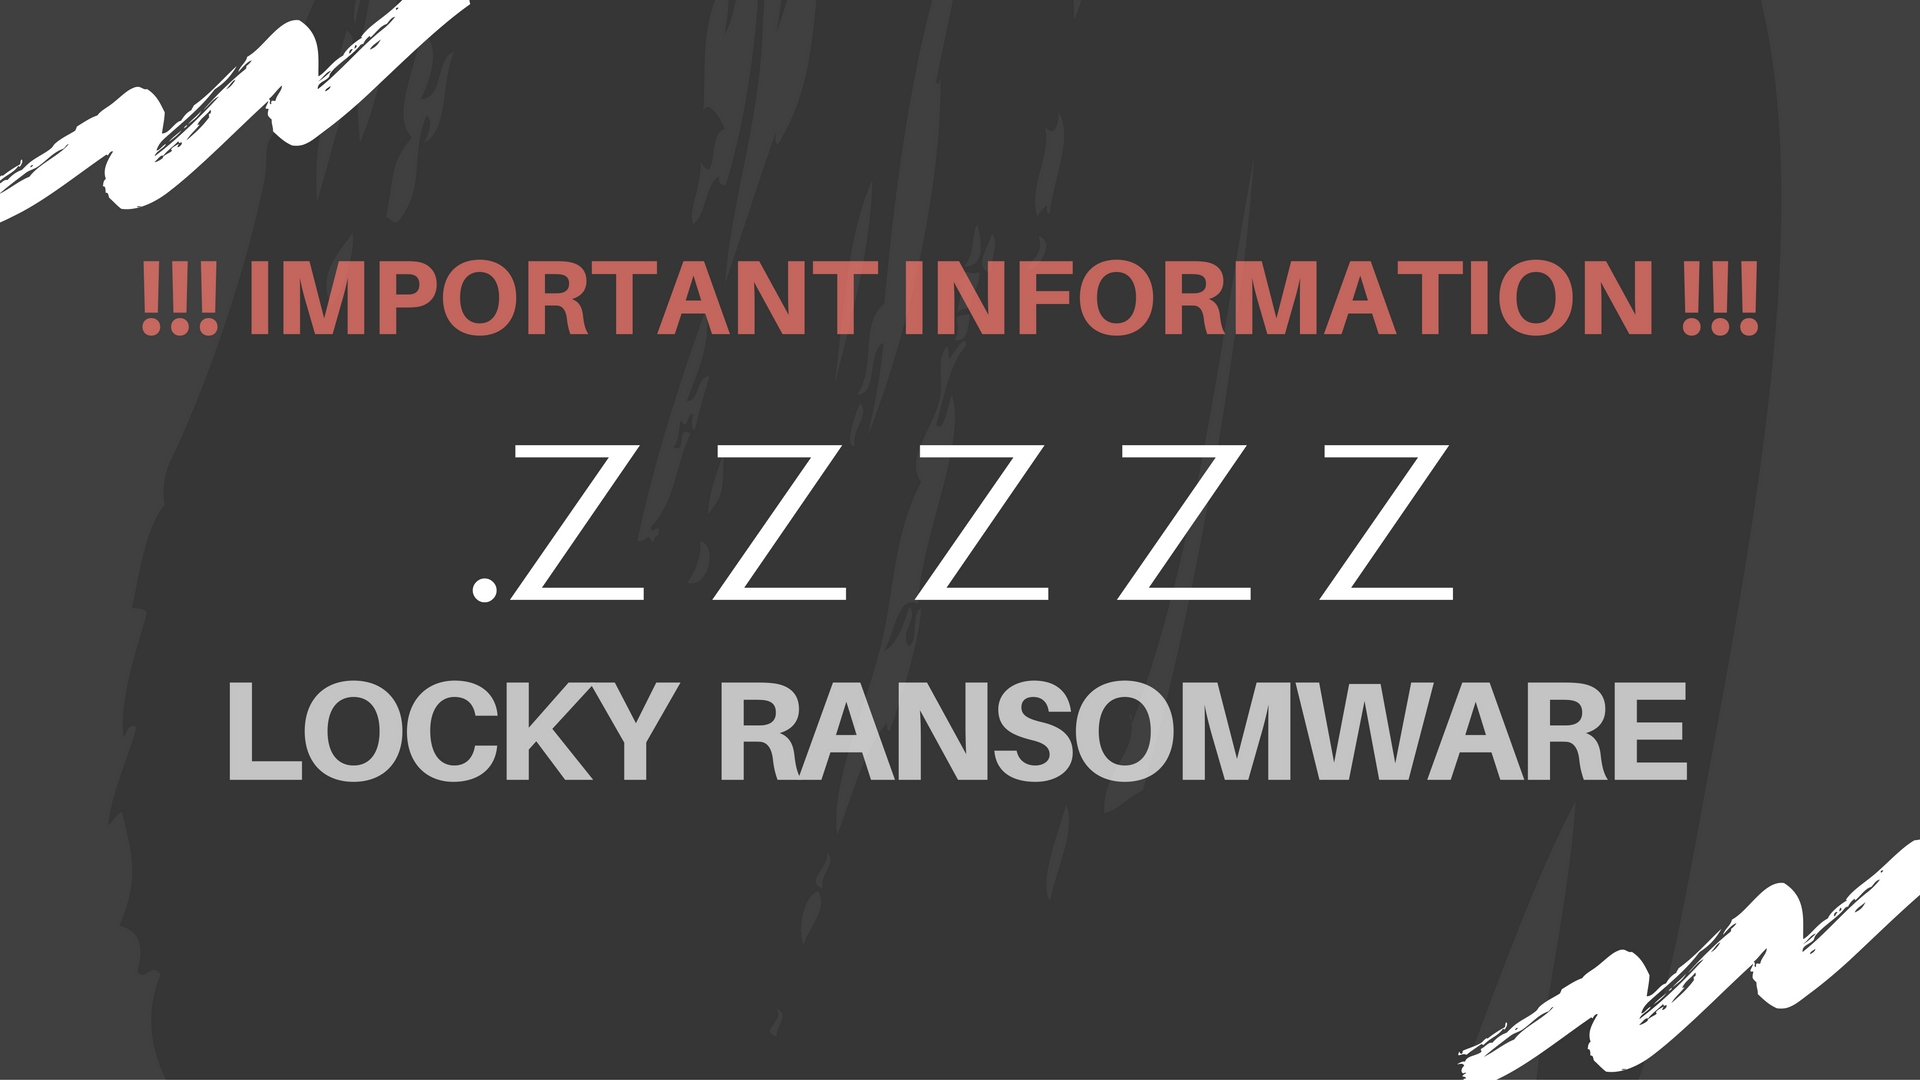 .zzzzz Malicious File Extension (Removal Steps and Protection Updates)